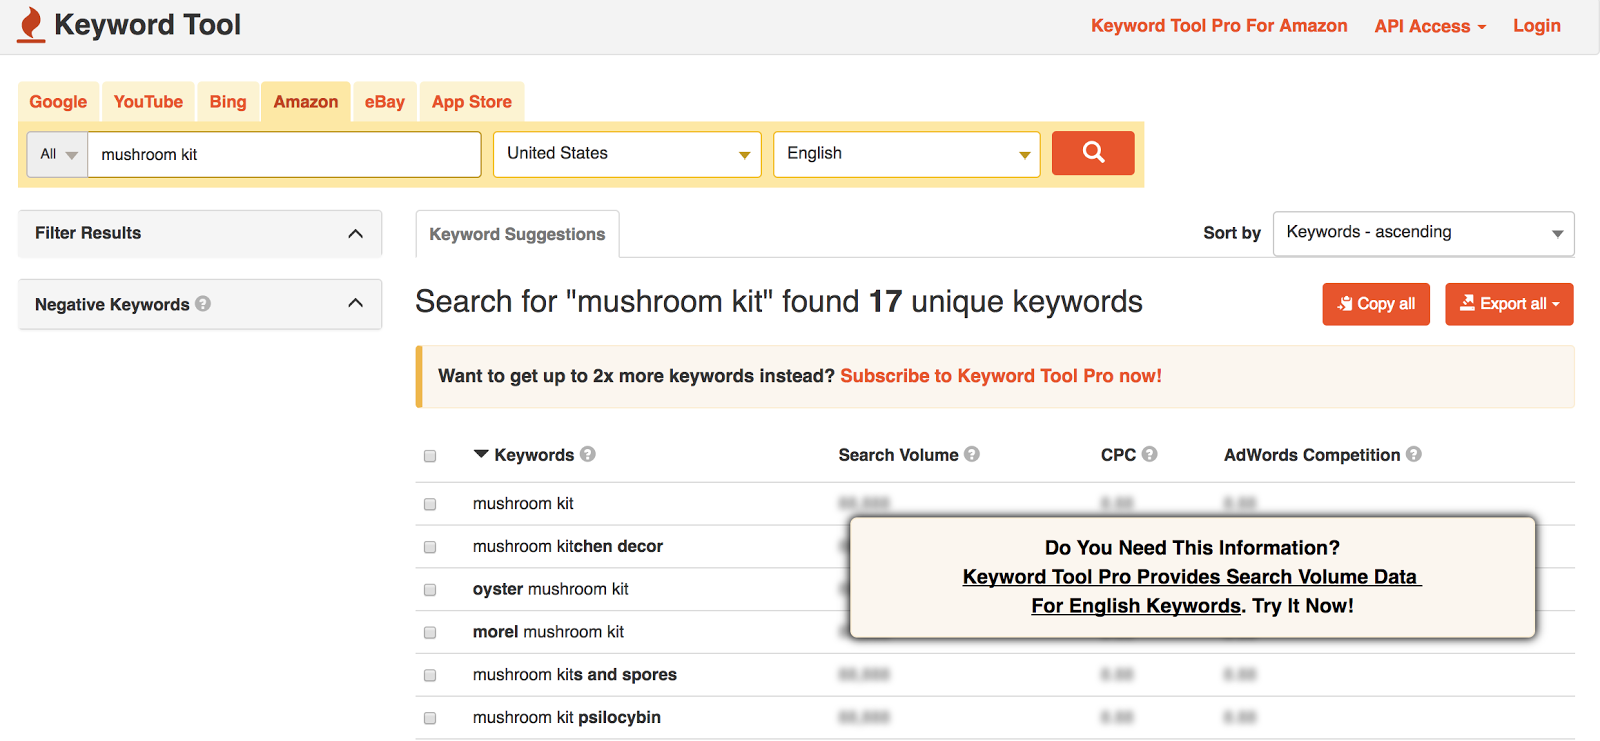 Keyword Tool: Everything you need to get started and full data with a pro plan